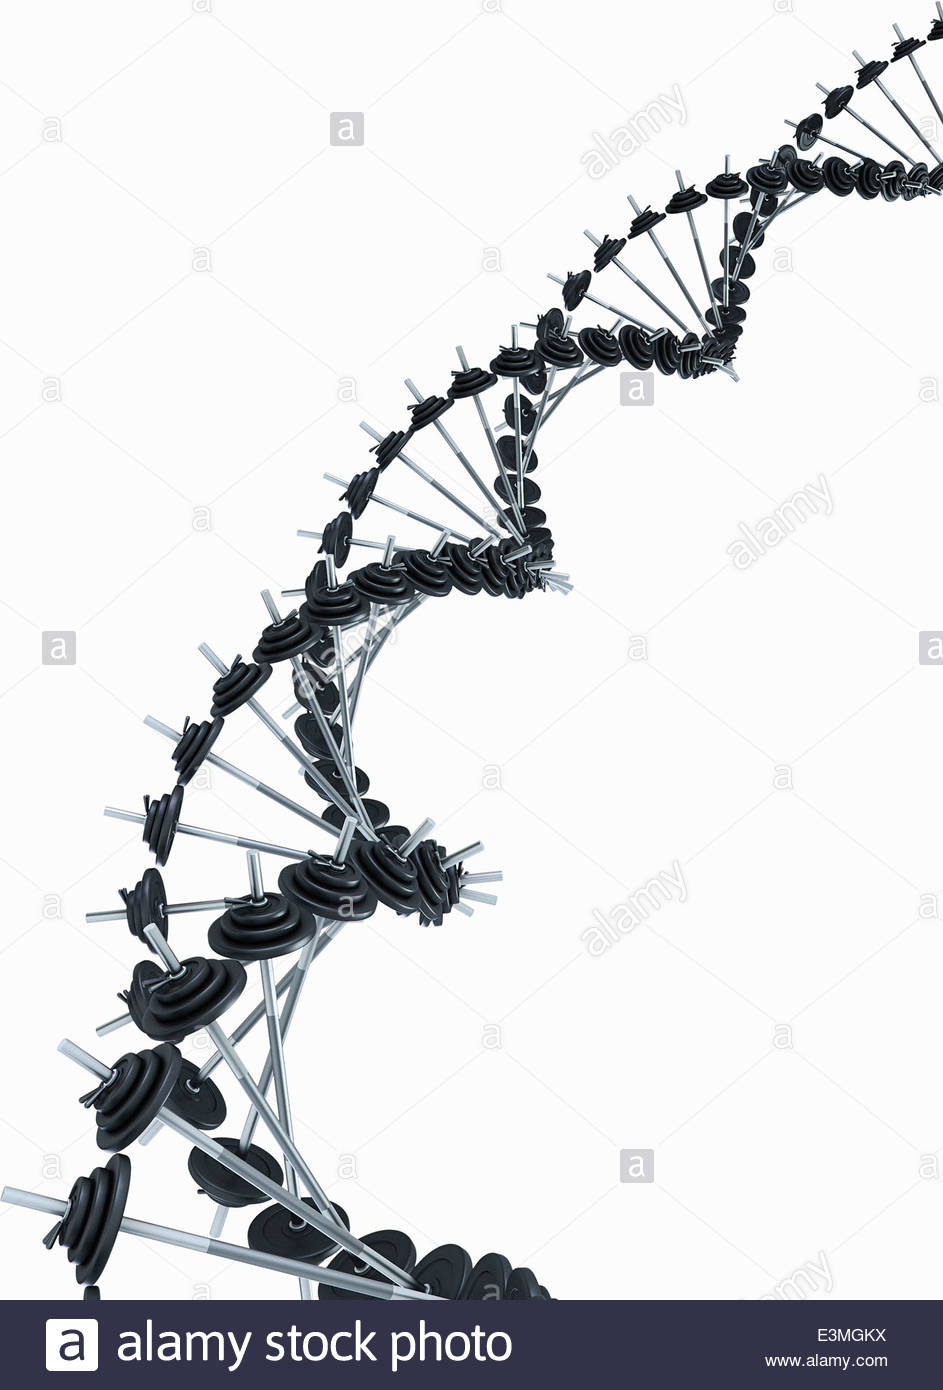 Barbells forming double helix - Stock Image